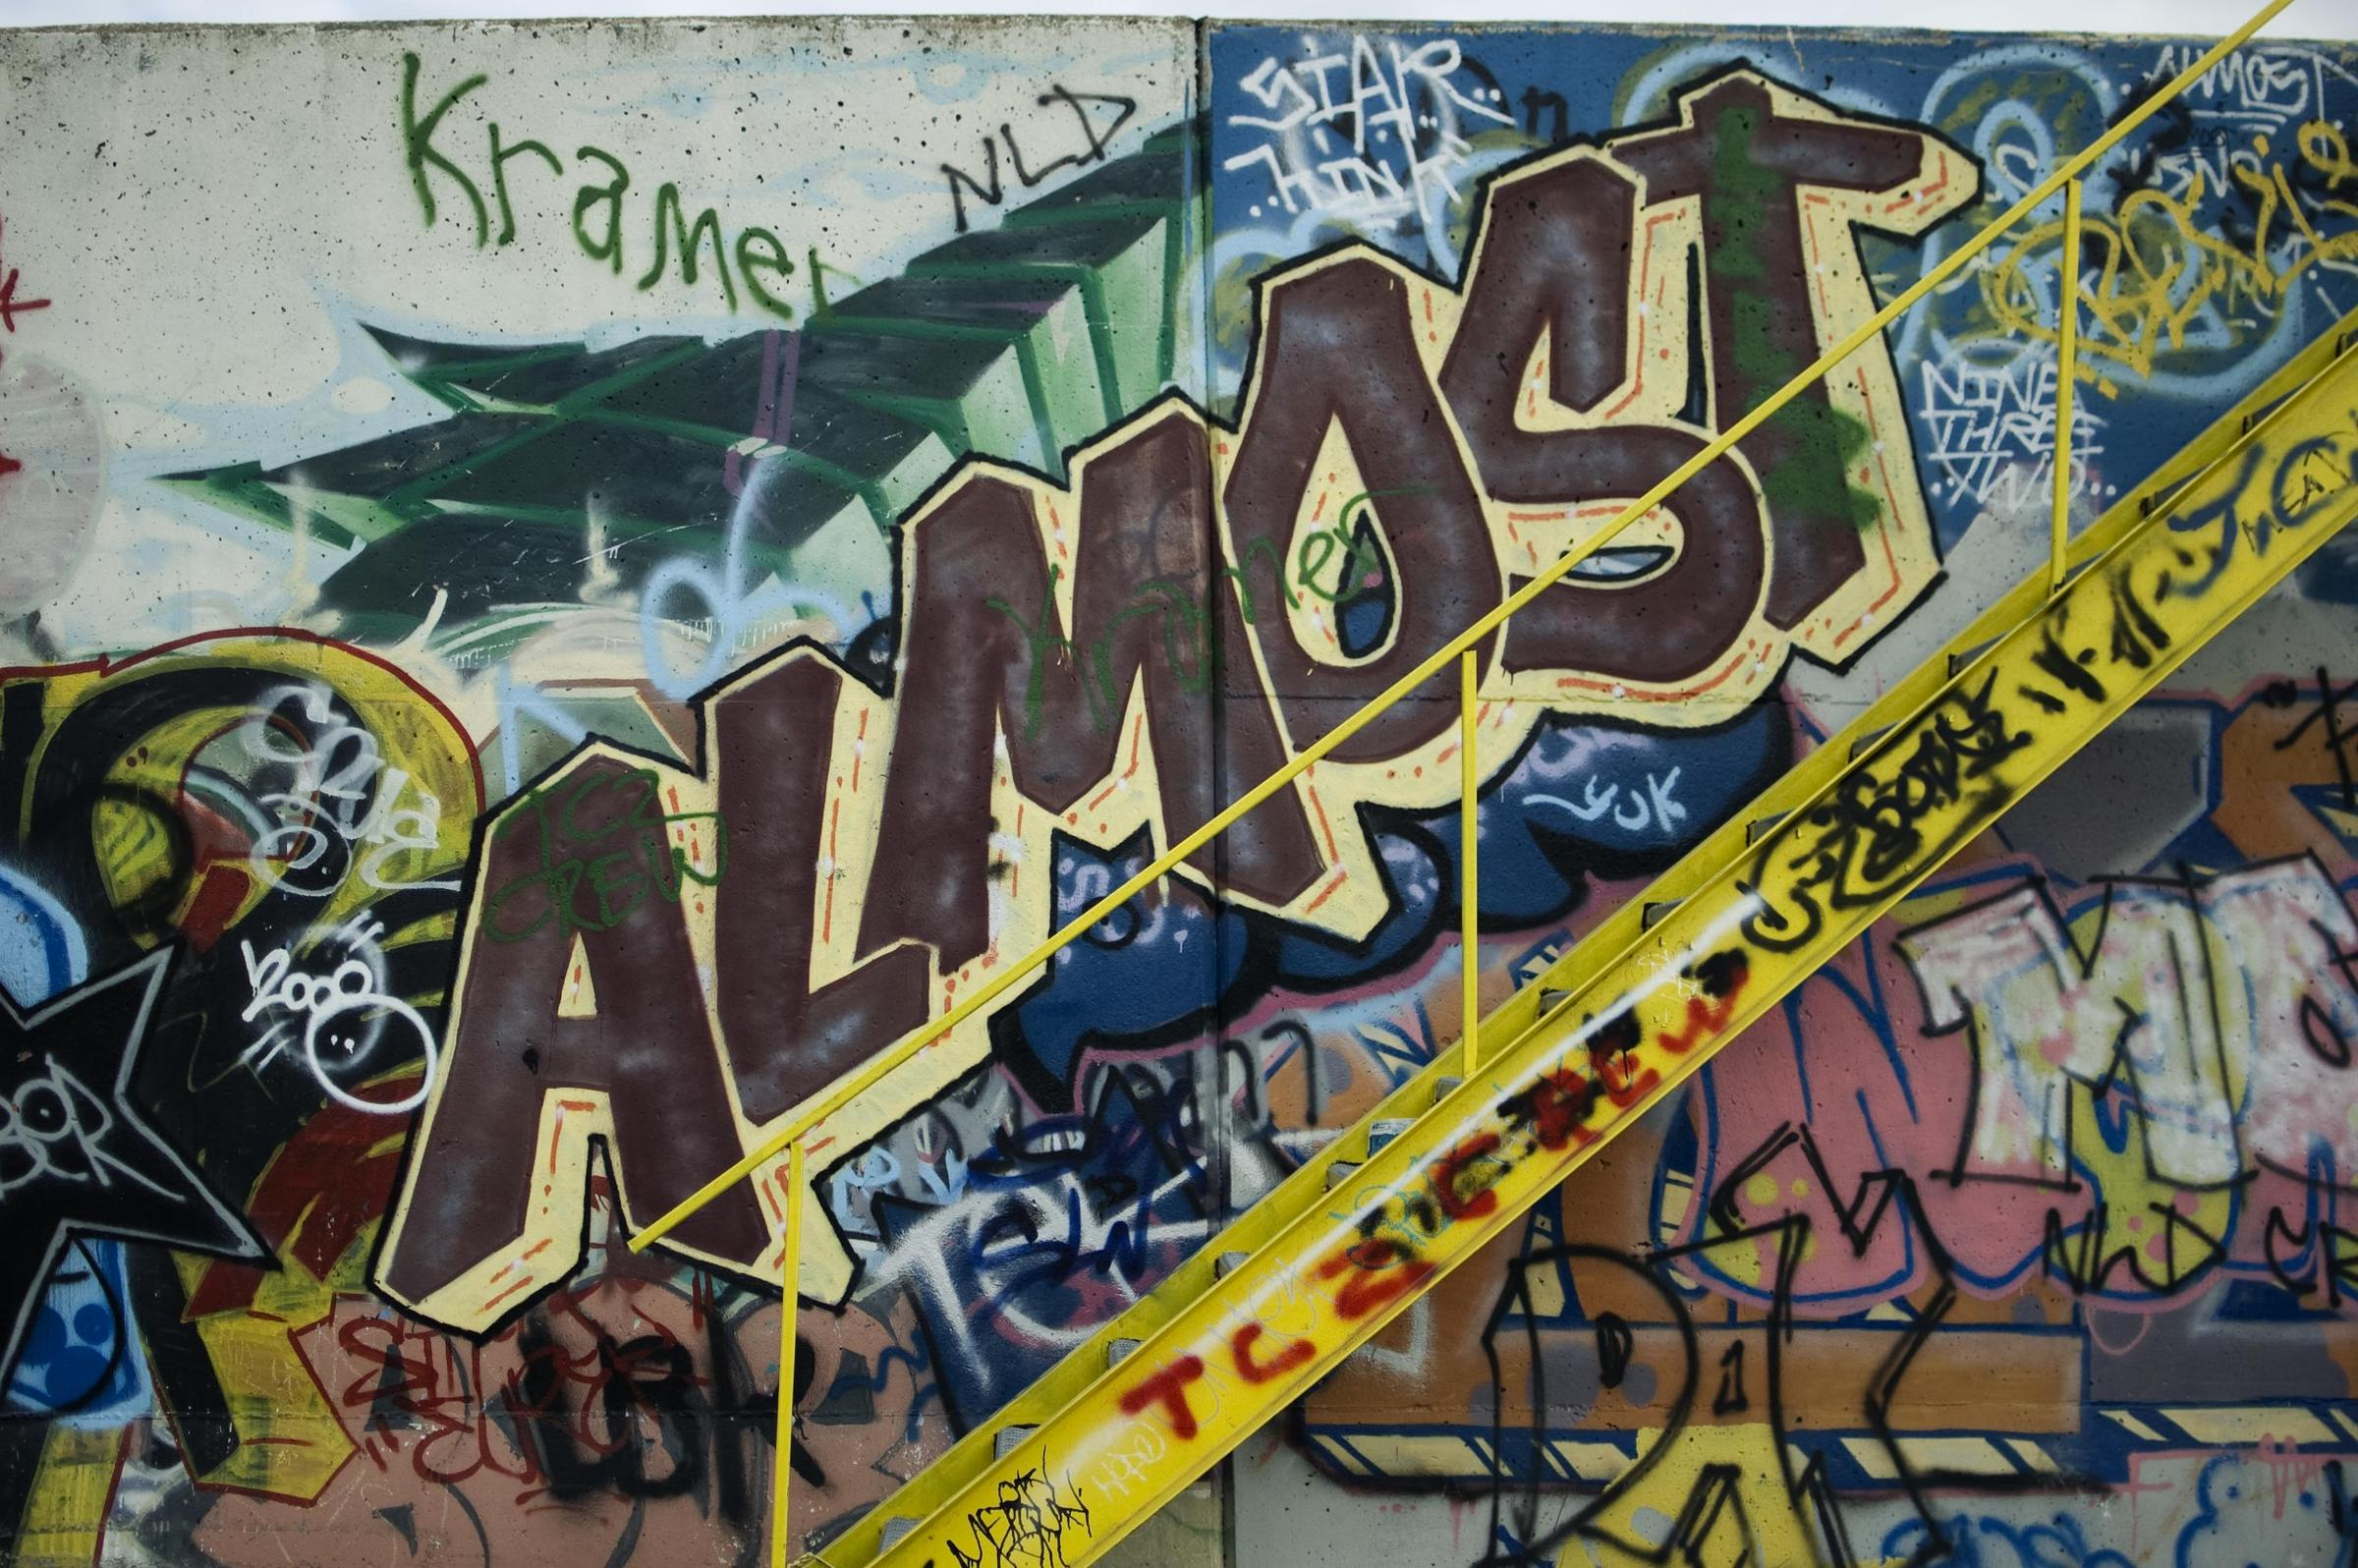 is graffiti art? and what is the difference between murals and legal